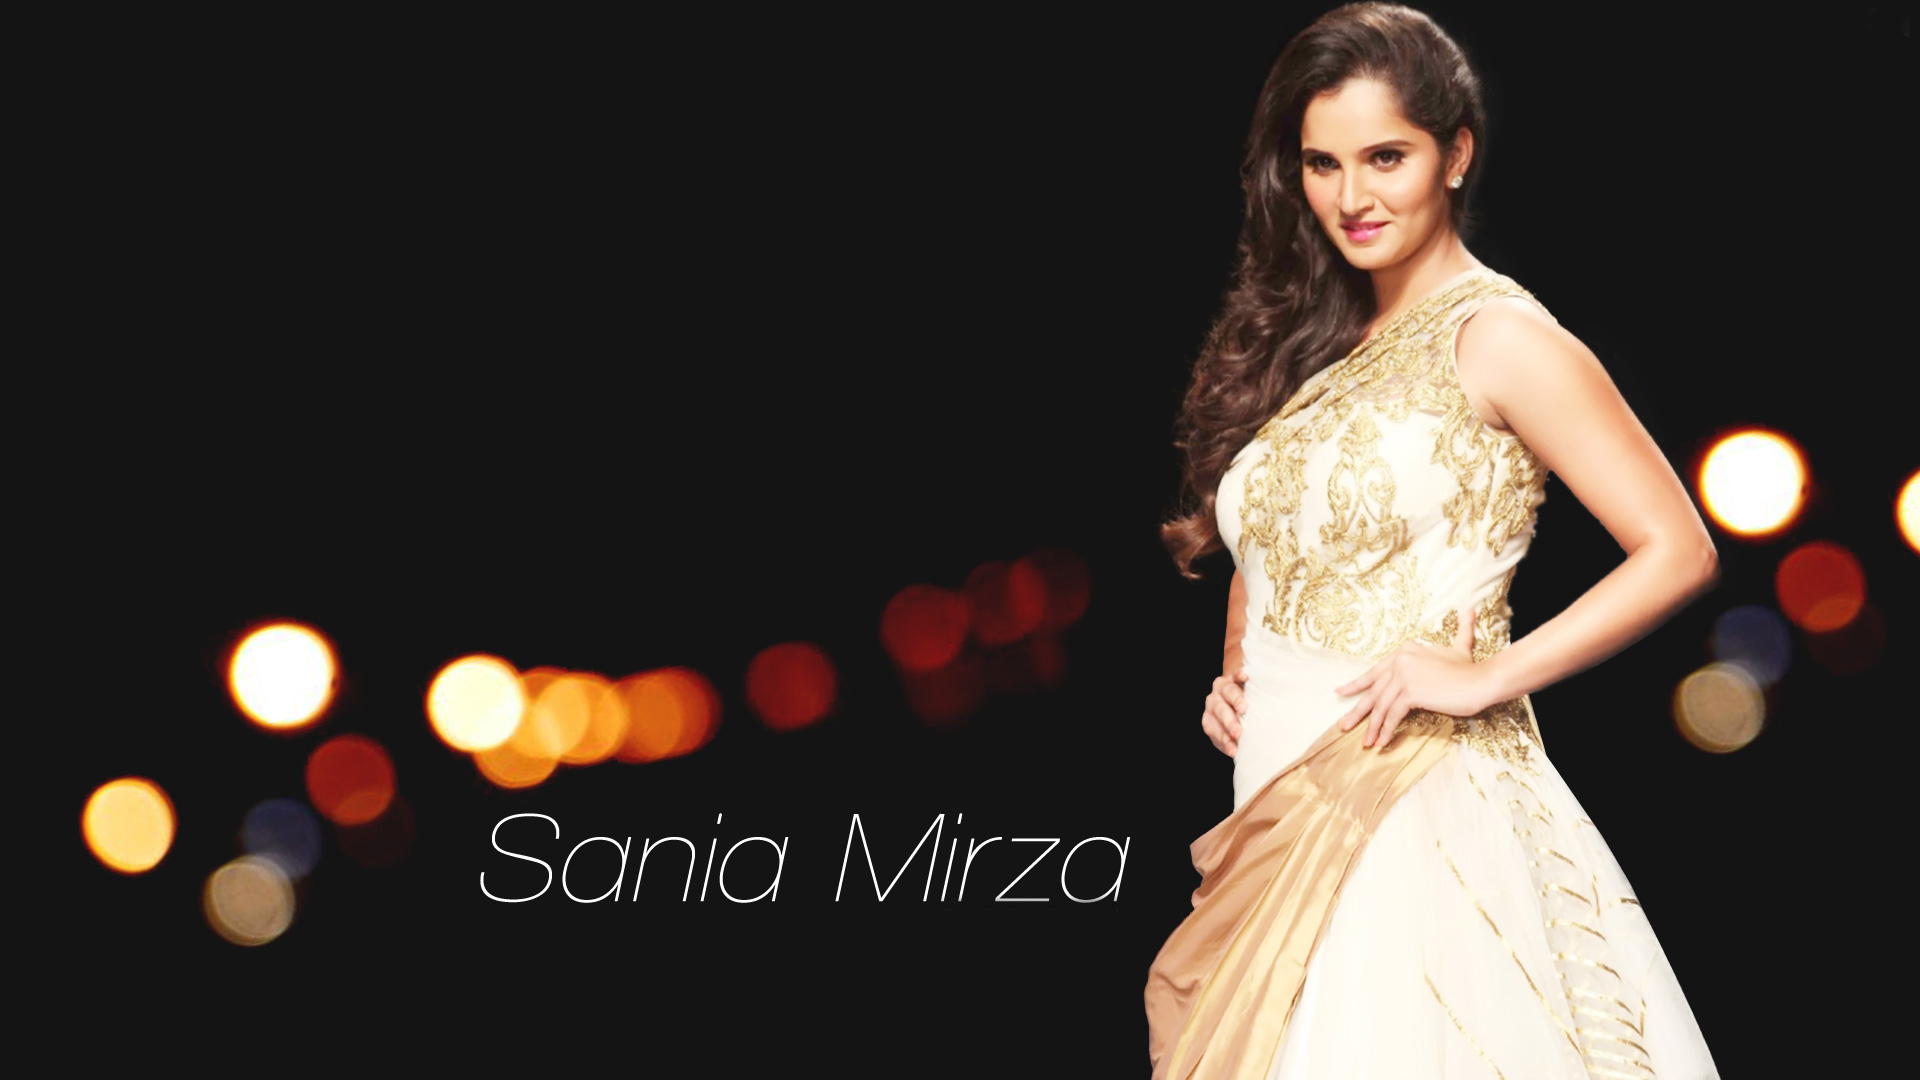 1920x1080 - Sania Mirza Wallpapers 19